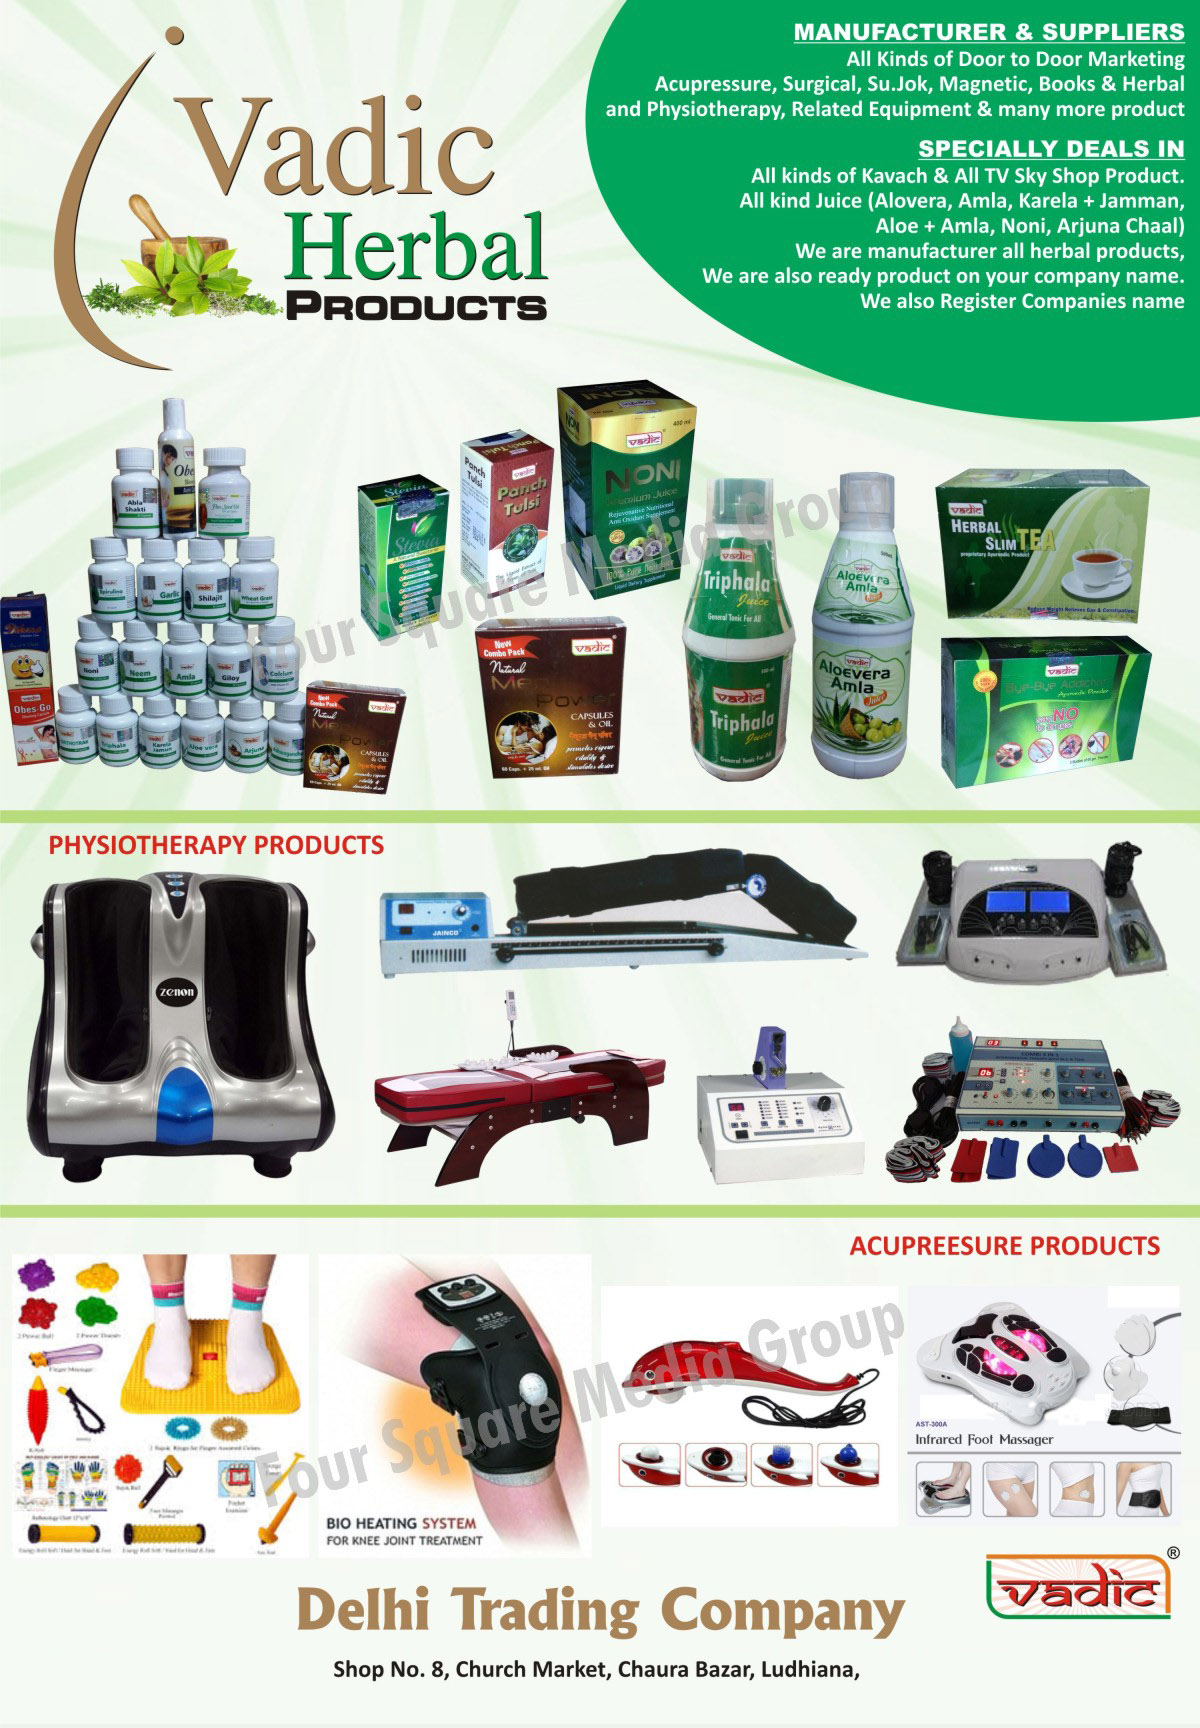 Acupressure Equipments, Surgical Equipments, Sujok Equipments, Magnetic Equipments, Books, Herbal Products, Physiotherapy Equipments, Kavach, TV Sky Shop Products, Aloe Vera Juices, Amla Juices, Karela Jammun Juices, Aloevera Amla Juices, Noni Anti Oxident Supplement, Arjuna Chaal Juices, Panch Tulsi Sat, Herbal Slim Tea, Triphala Juices, Physiotherapy Products, Bio Heating Systems For Knee Joint Treatments, Infrared Foot Massagers